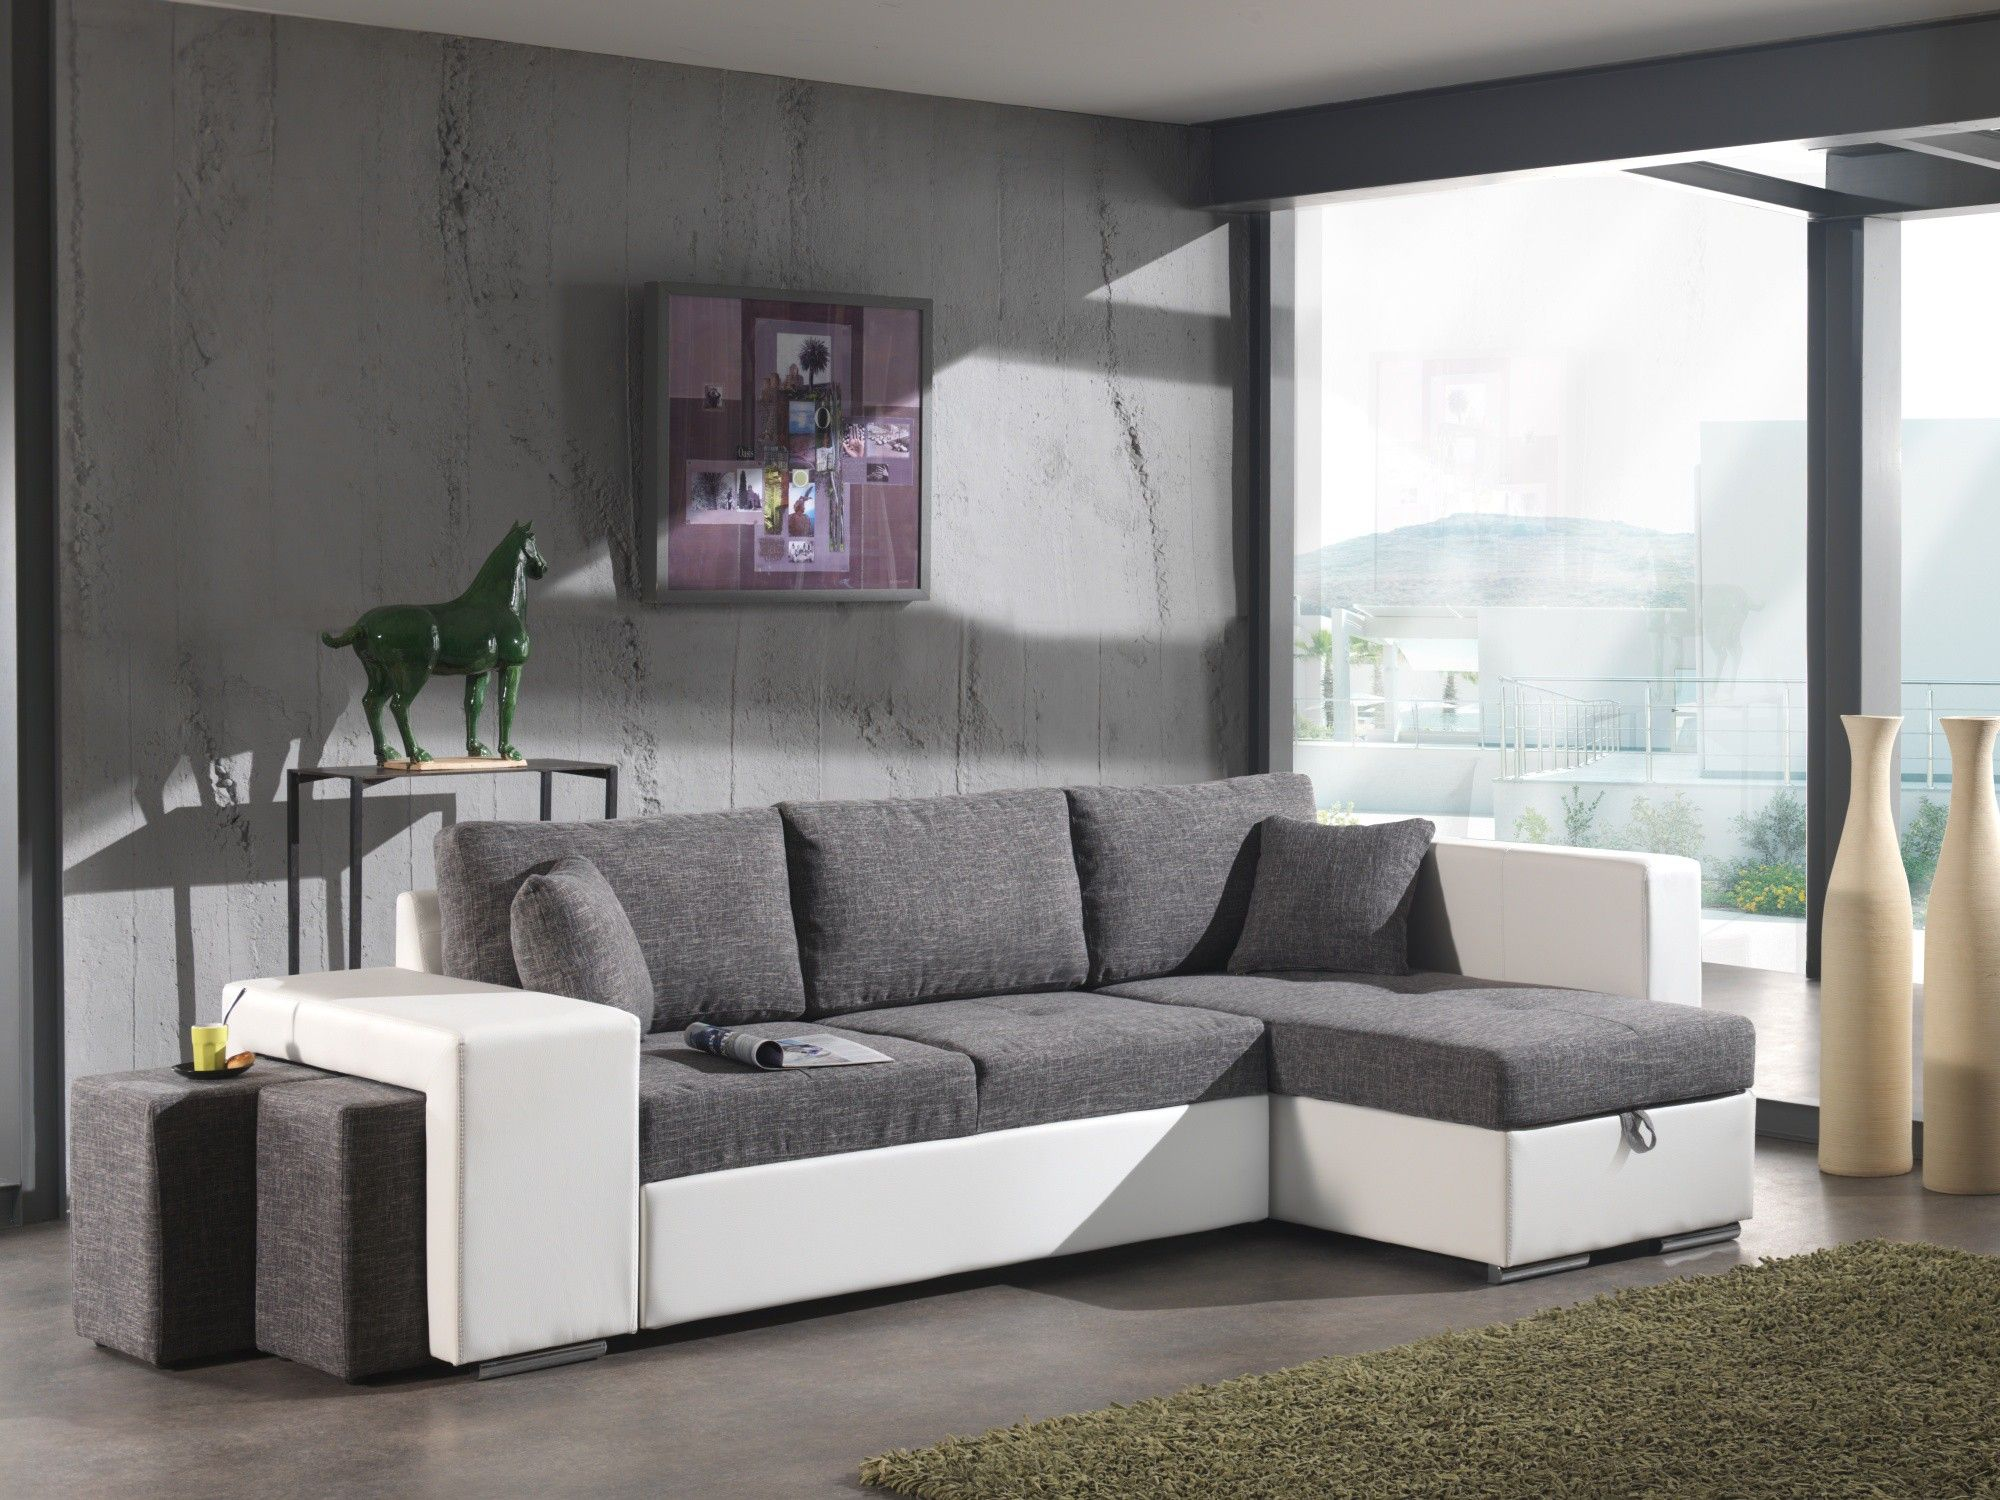 canape gris moderne cool canaps pas cher tissu moderne gris et marron mango petit prix with. Black Bedroom Furniture Sets. Home Design Ideas